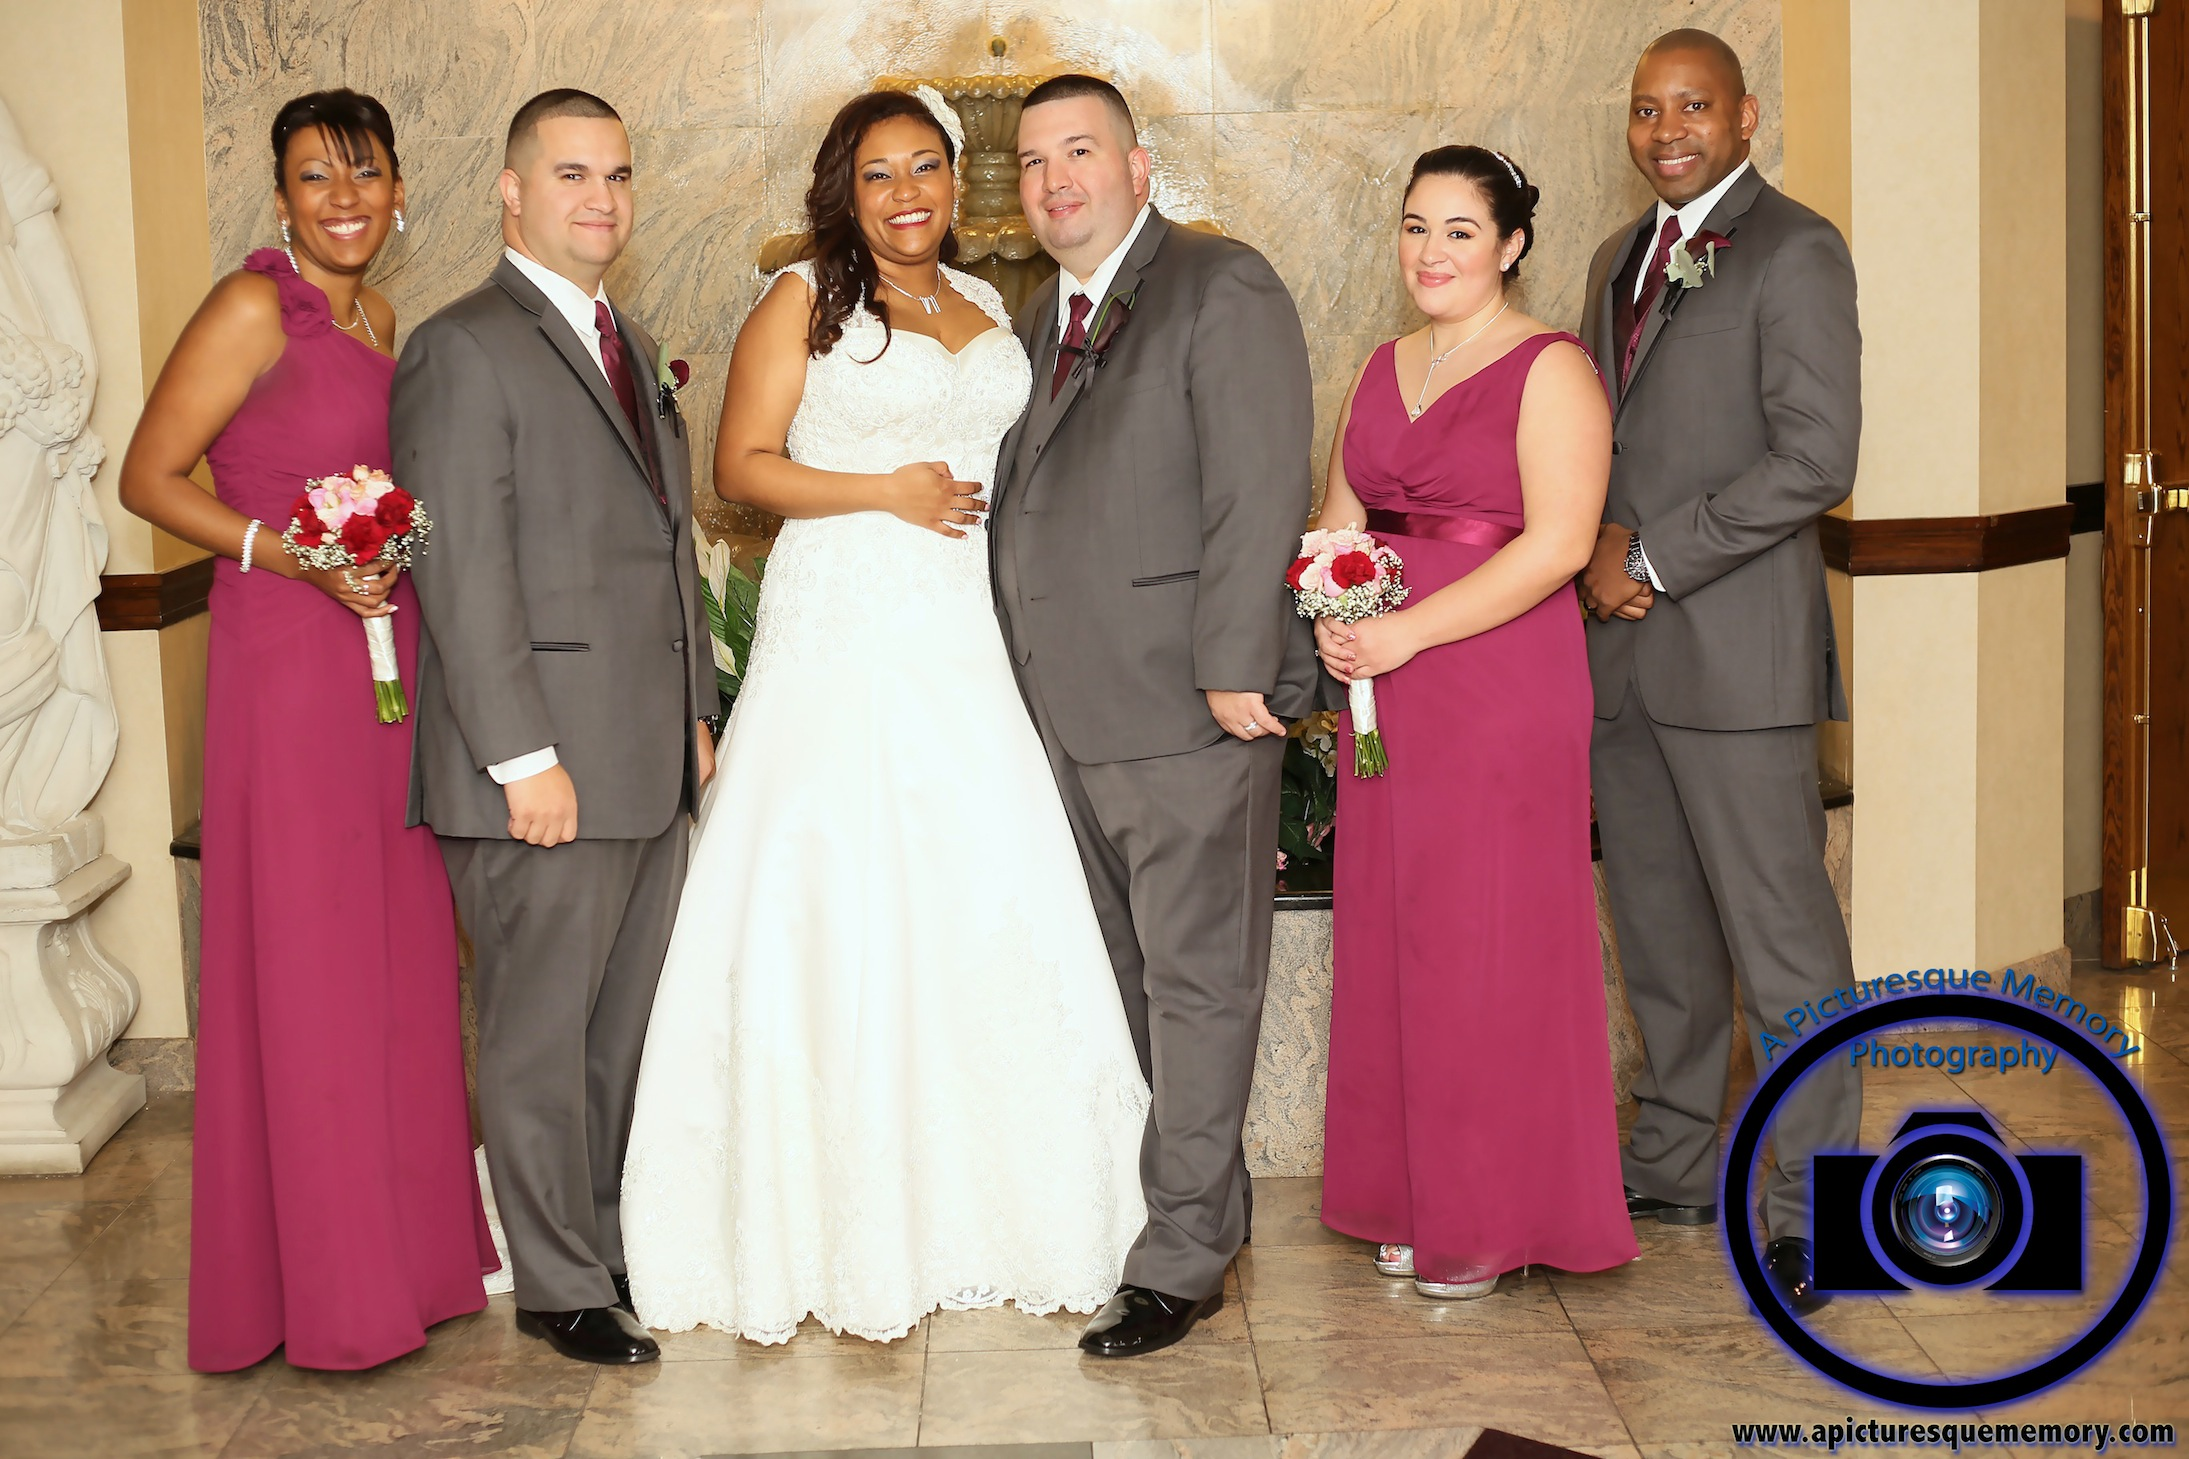 #njwedding, #njweddingphotography, #southbrunswickweddingphotographer#weddingphotos, #apicturesquememoryphotography, #pierresofsouthbrunswickweddingphotographer, #bridalparty, #brideandgroom